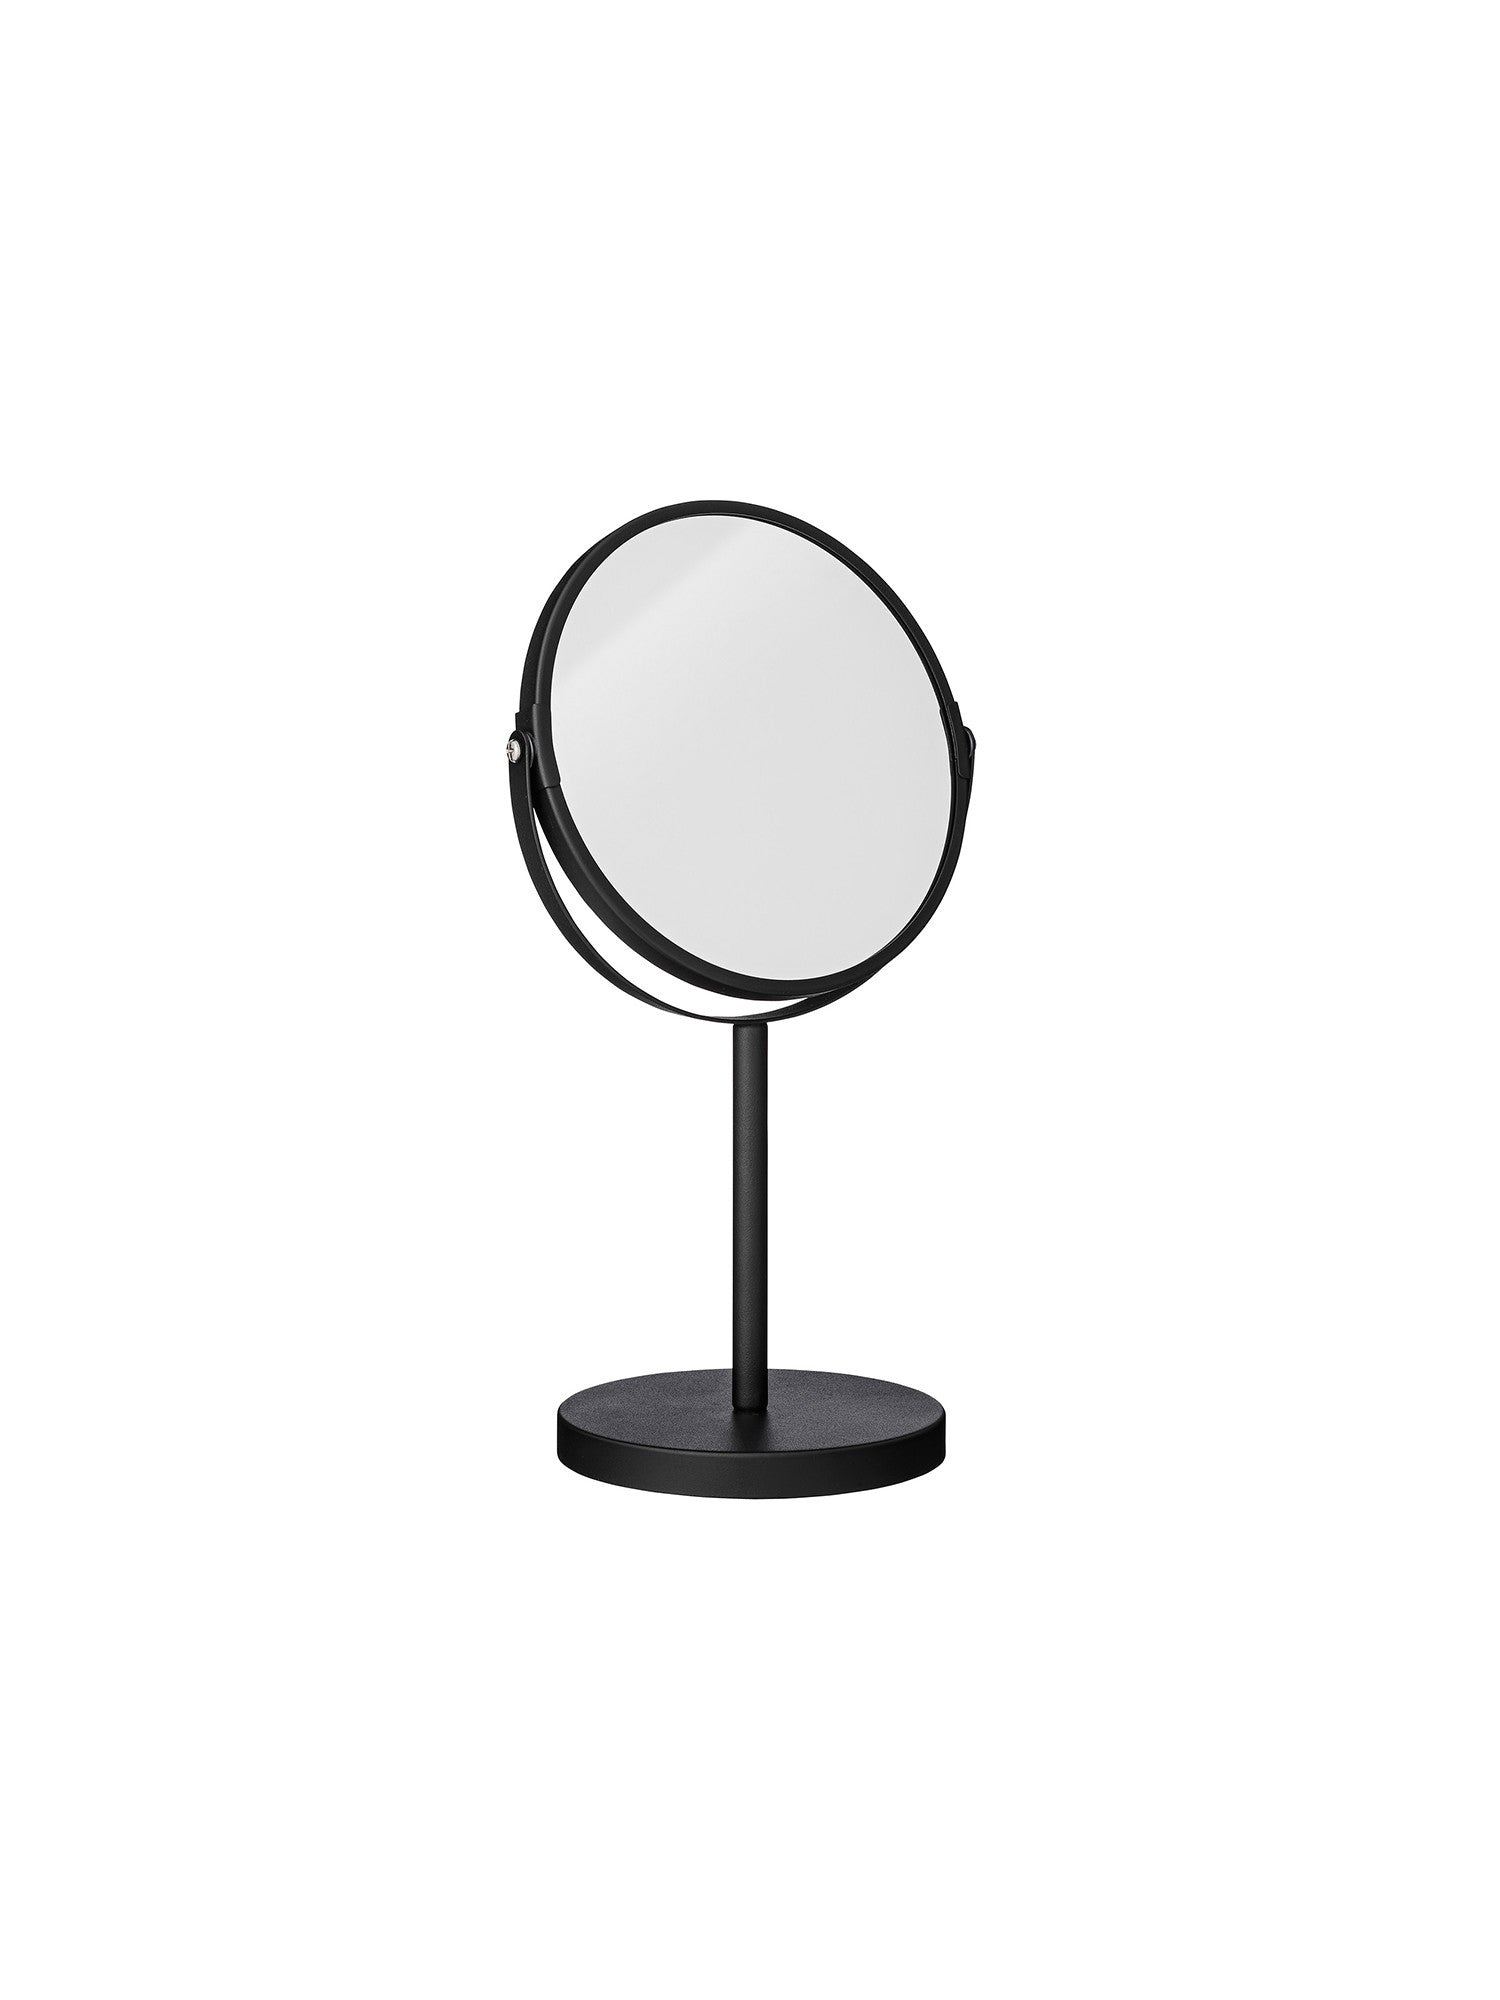 Cool Black Cosmetic Mirror #27160004